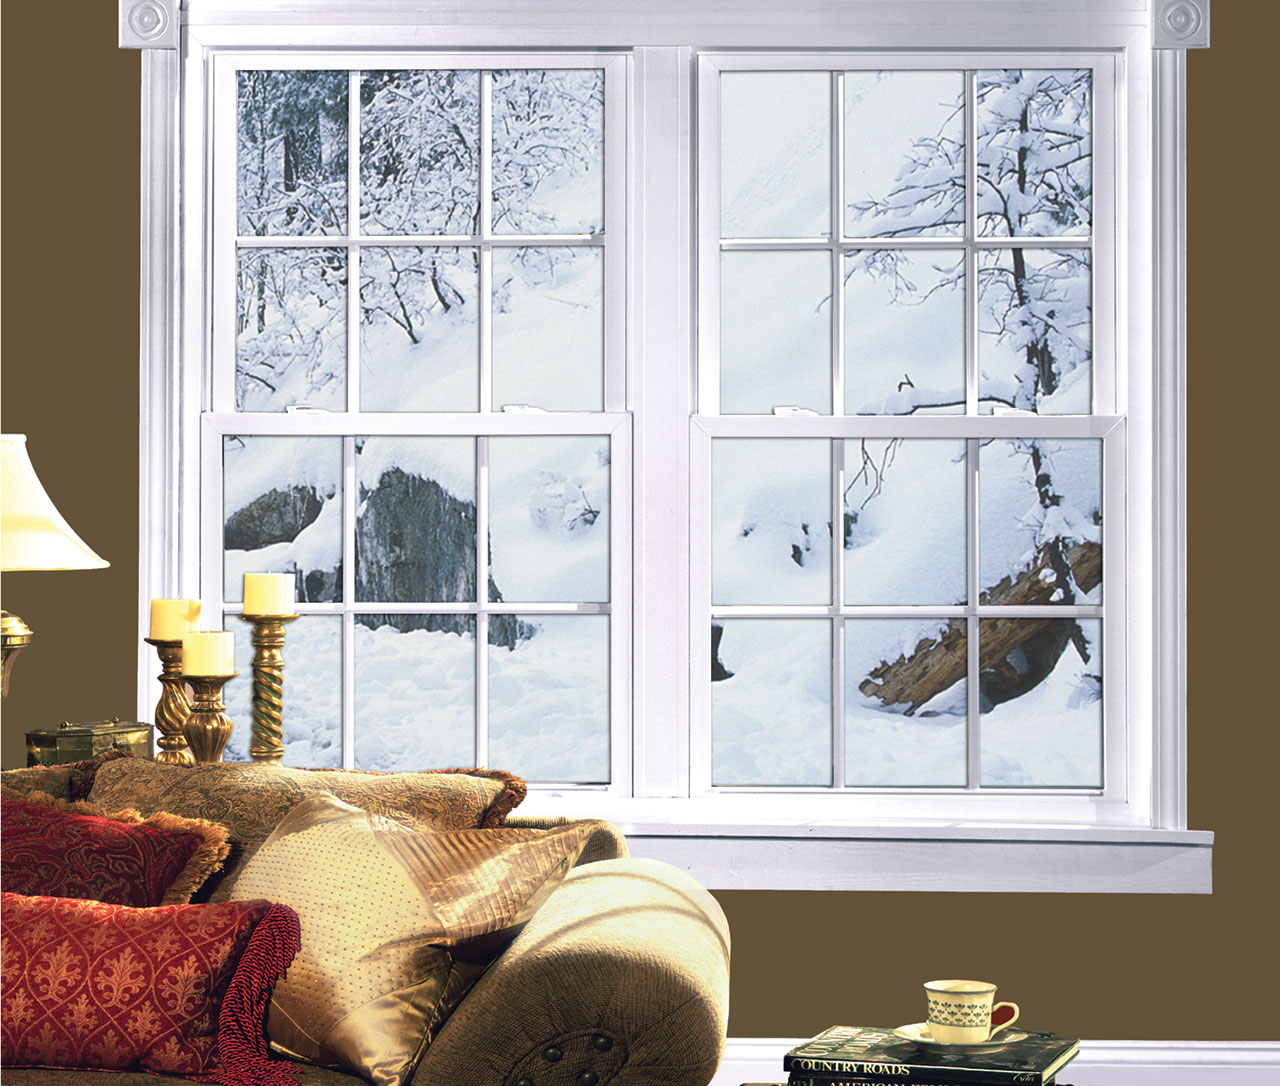 Double hung window 01 majestic vinyl windows and patio doors for Double hung patio doors